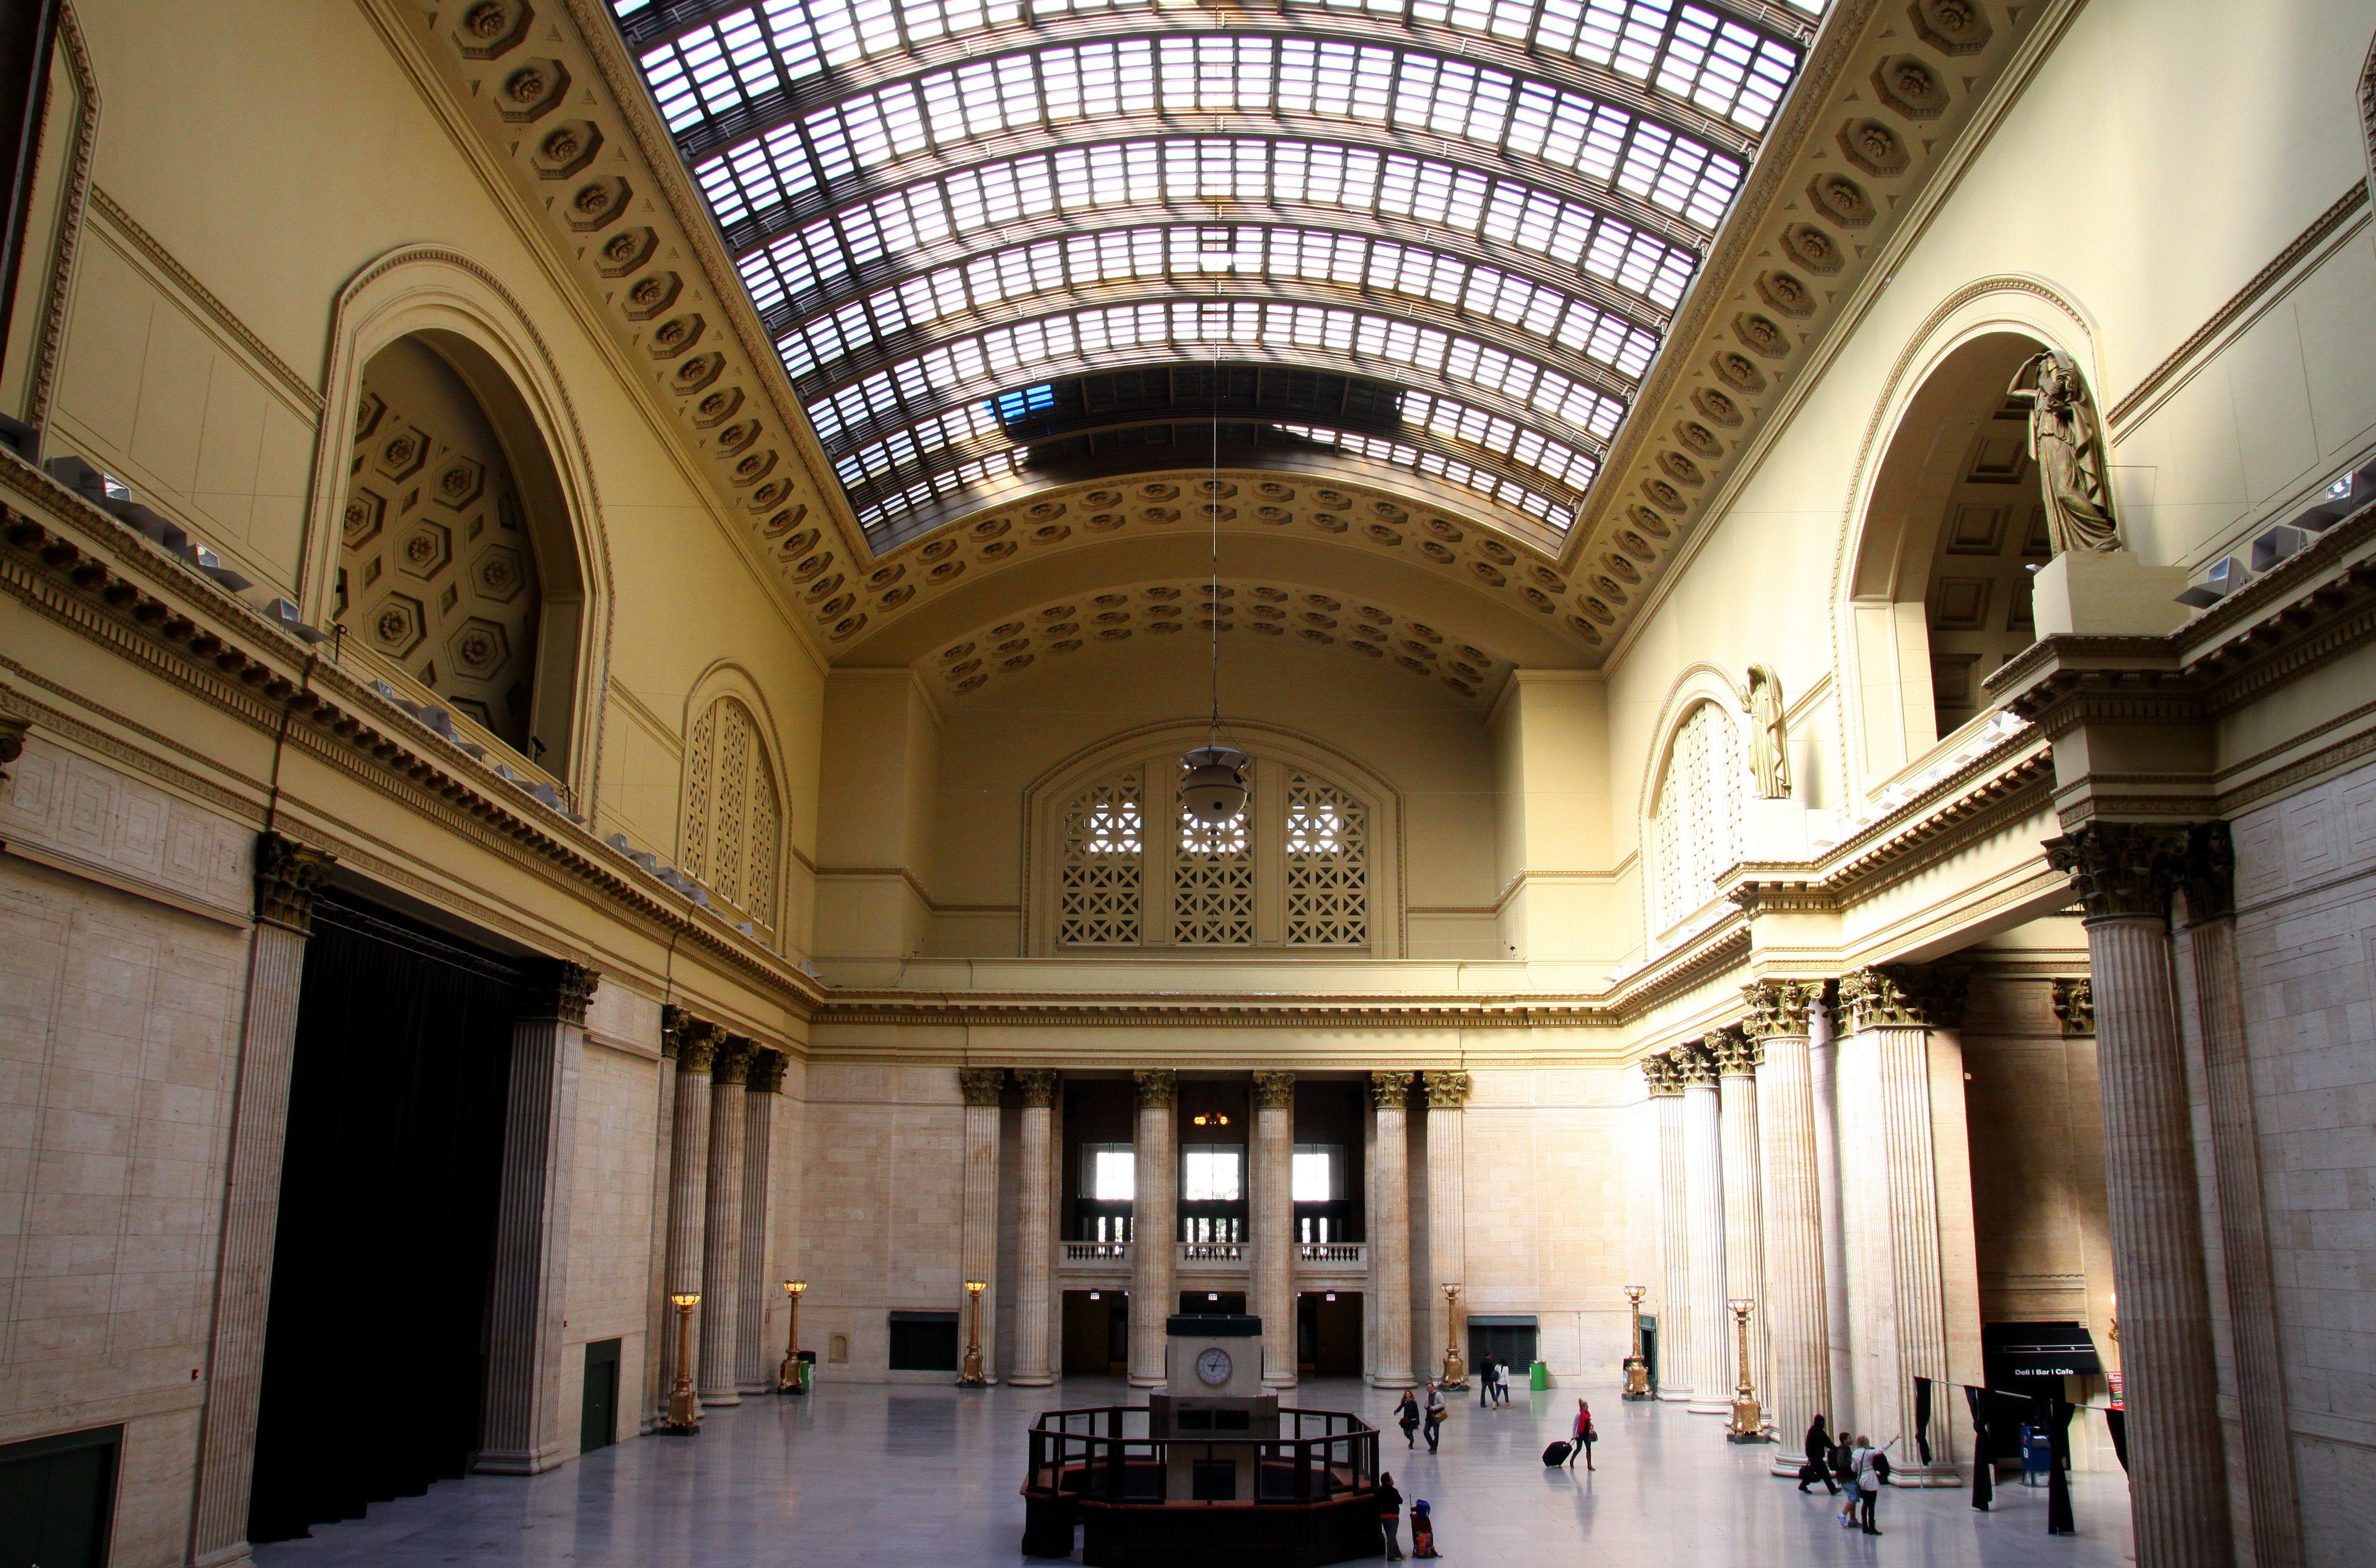 The Grand Hall at Chicago's Union Station